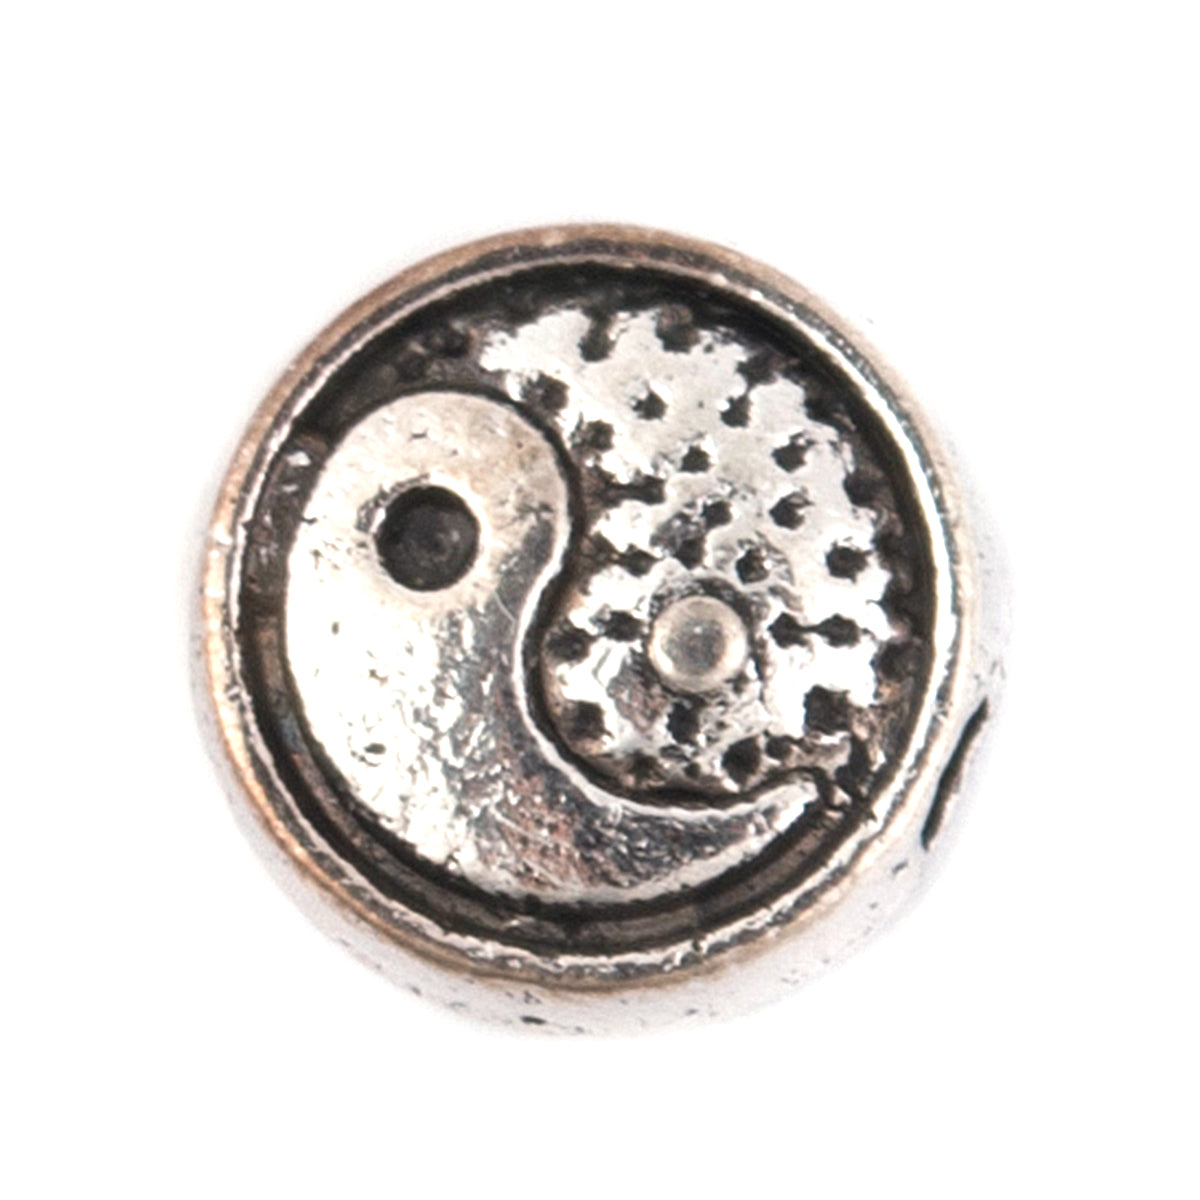 ISP01 - Perles Intercalaires Yin Yang Spacer Beads